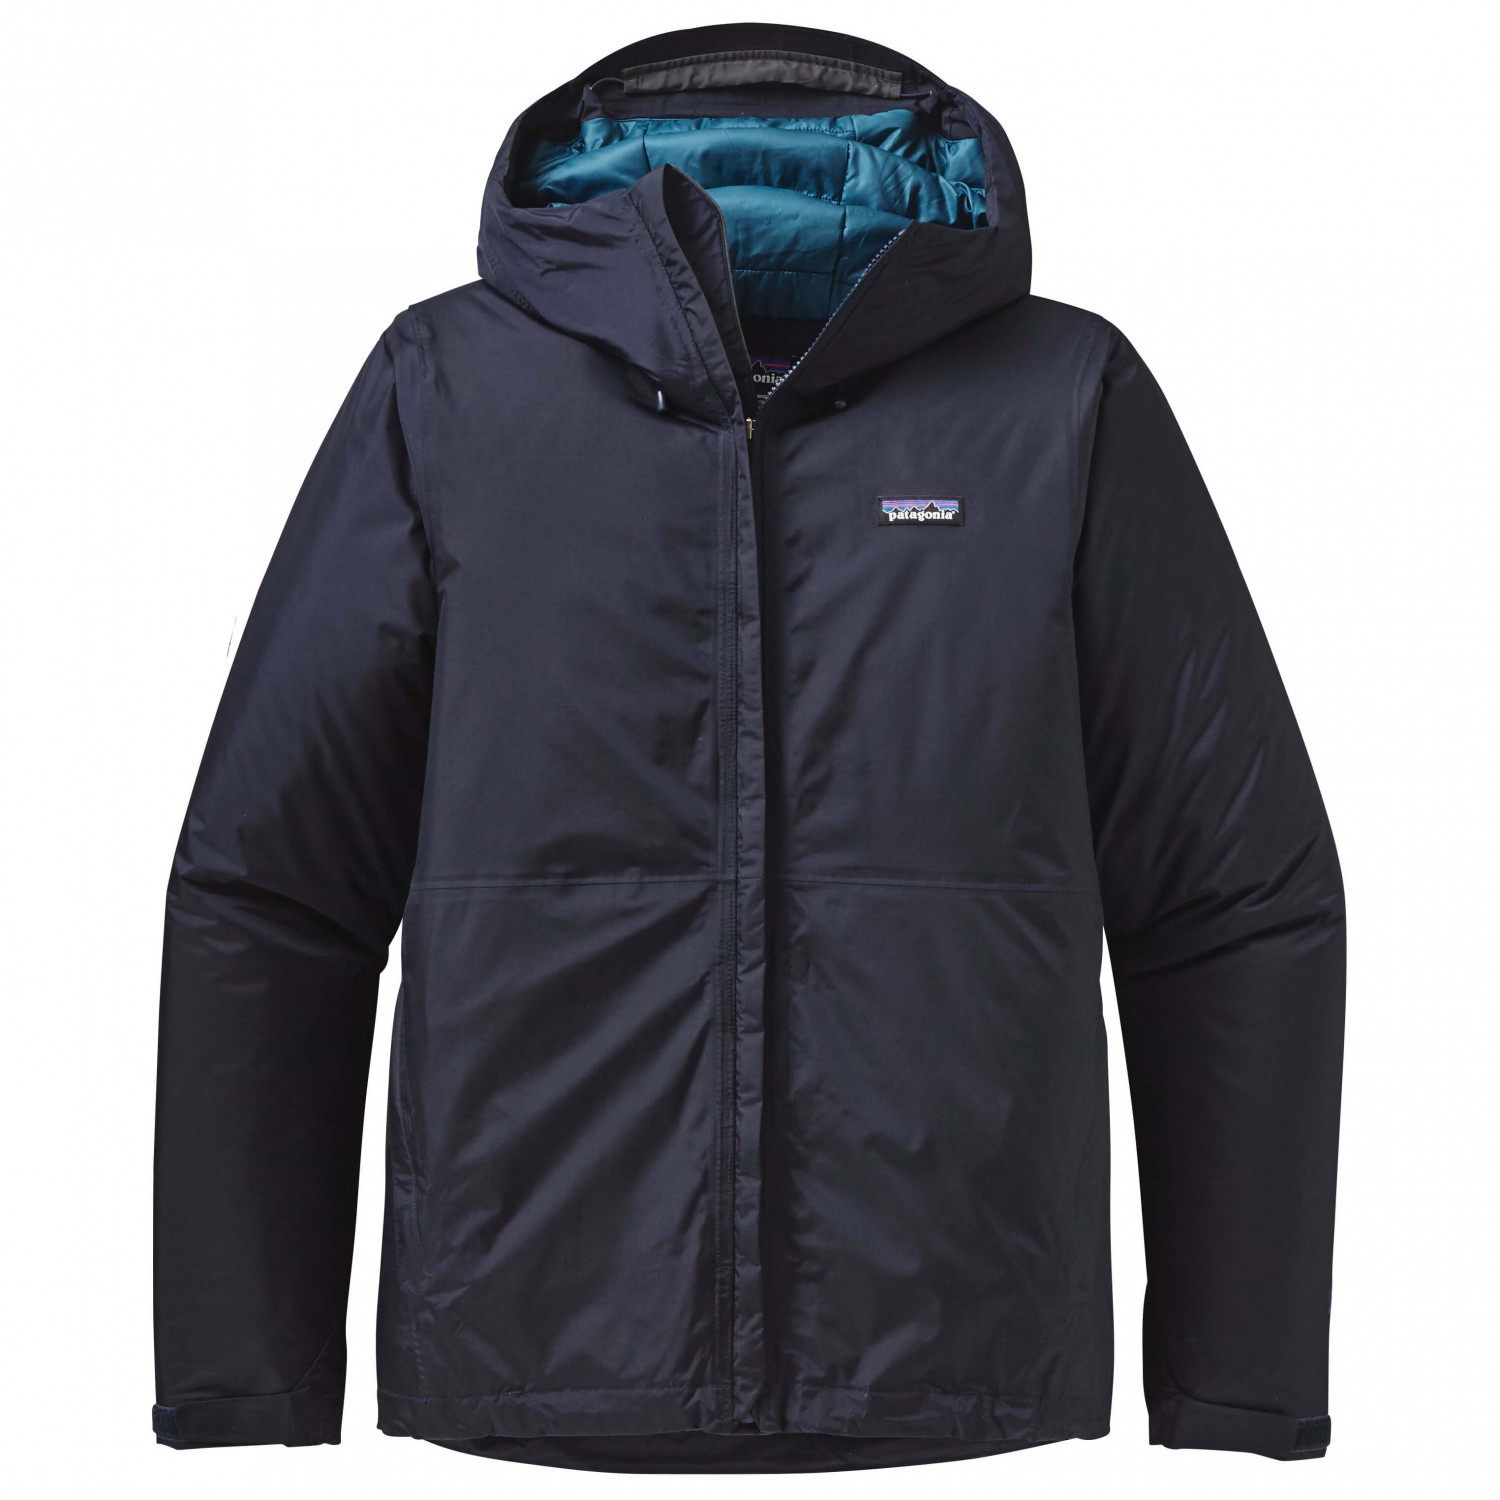 Patagonia Insulated Torrentshell Jacket Winter Jacket